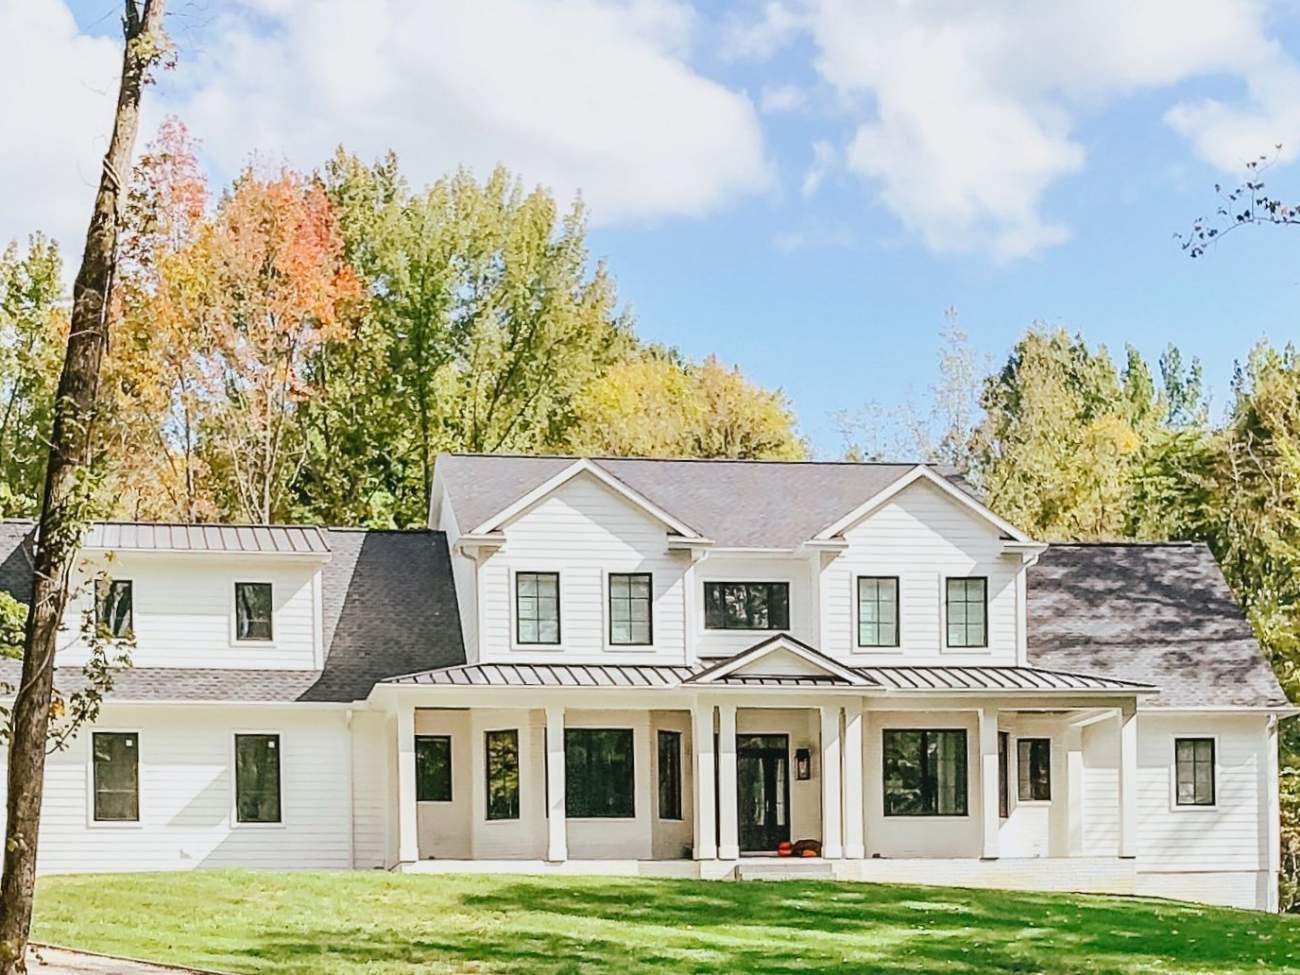 Modern Farmhouse Style Setting in the woods